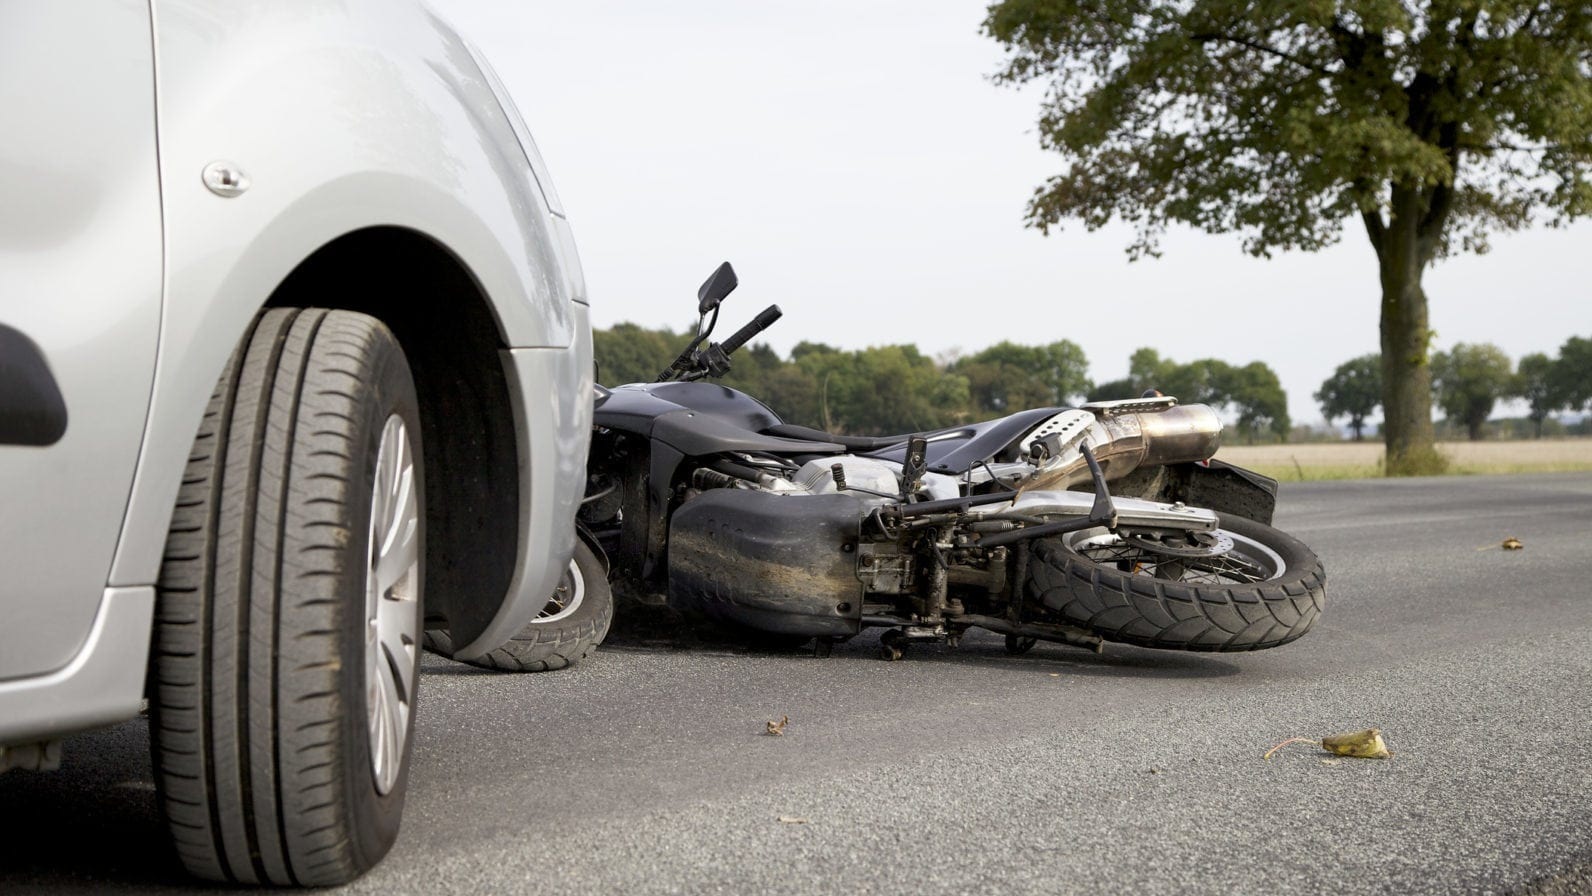 Motorcycle Accident With Car Stock Photo